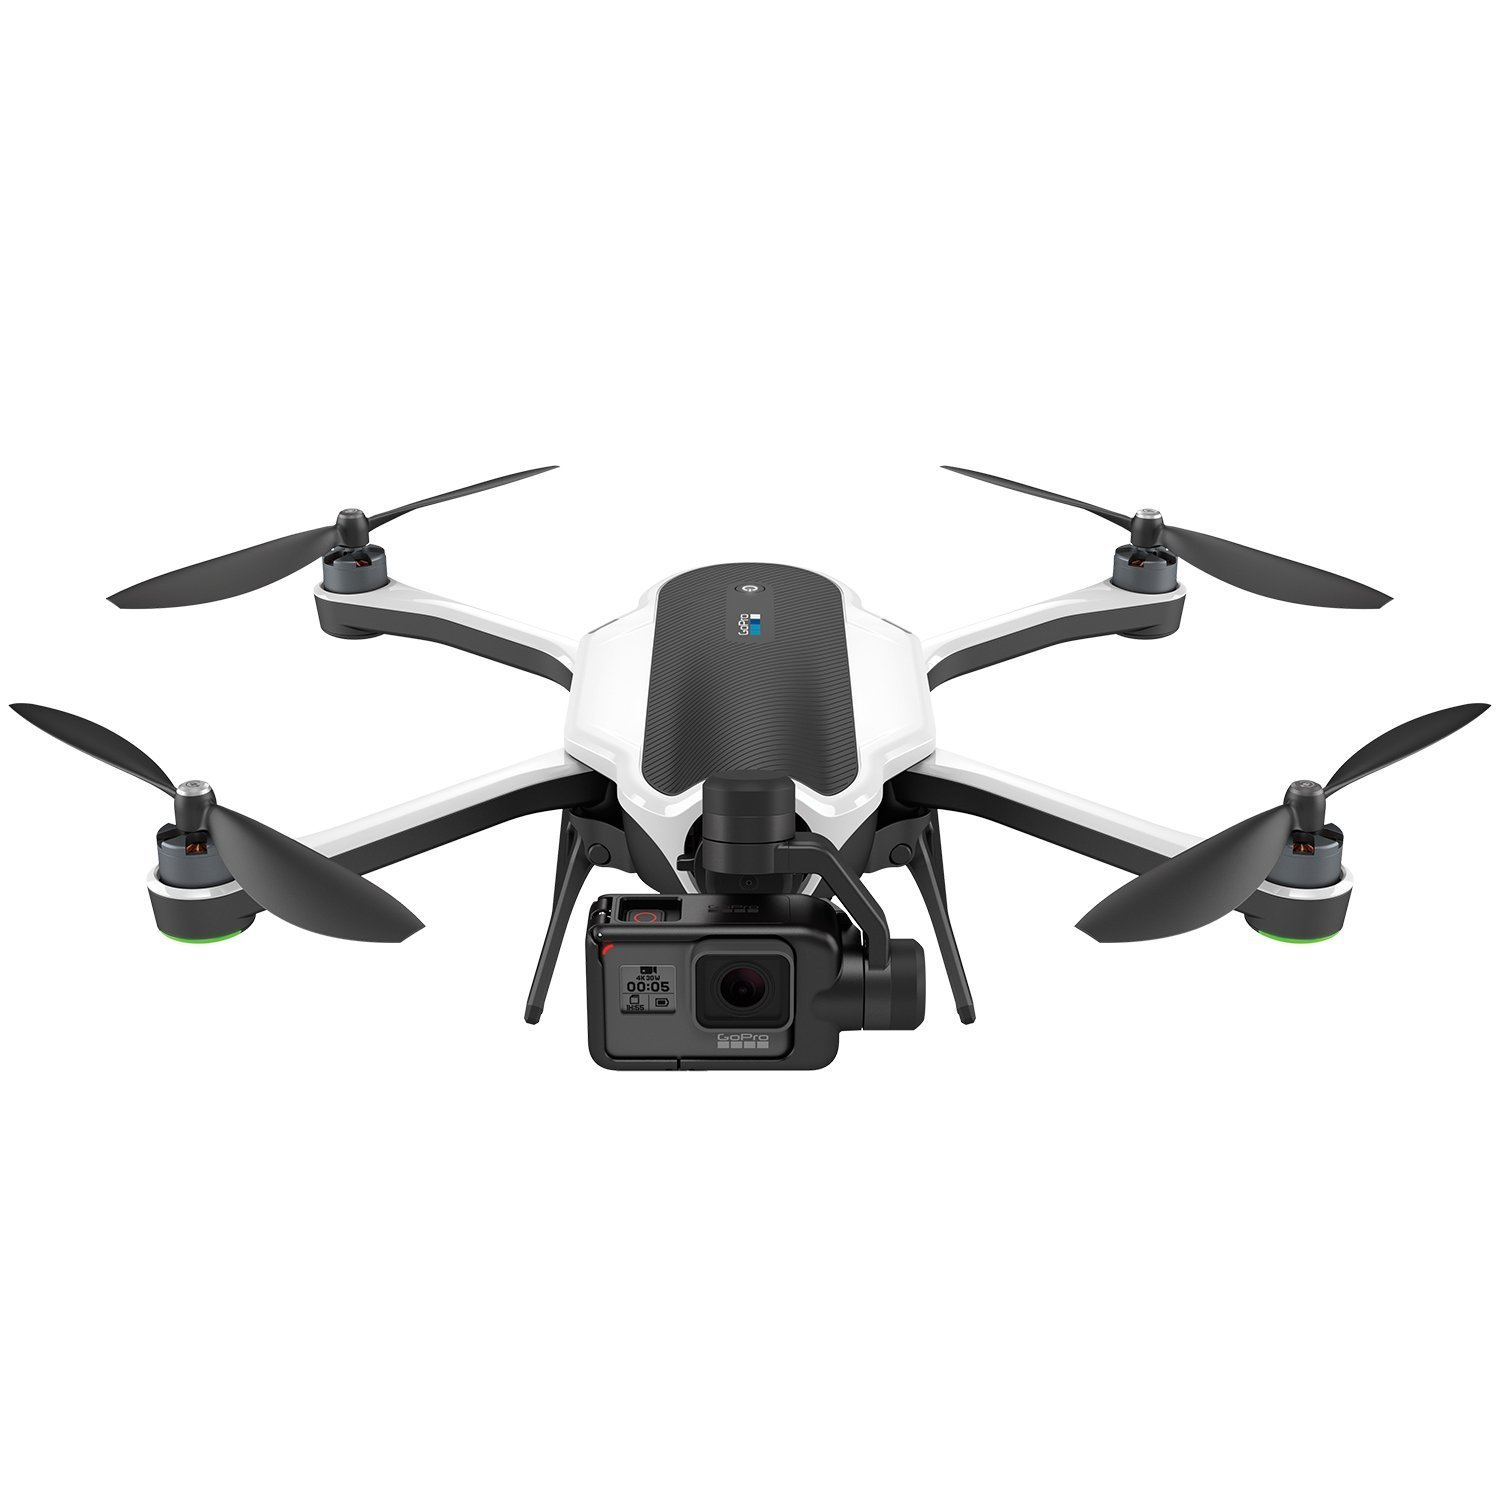 GoPro Karma Quadcopter with GoPro HERO5 Black Included